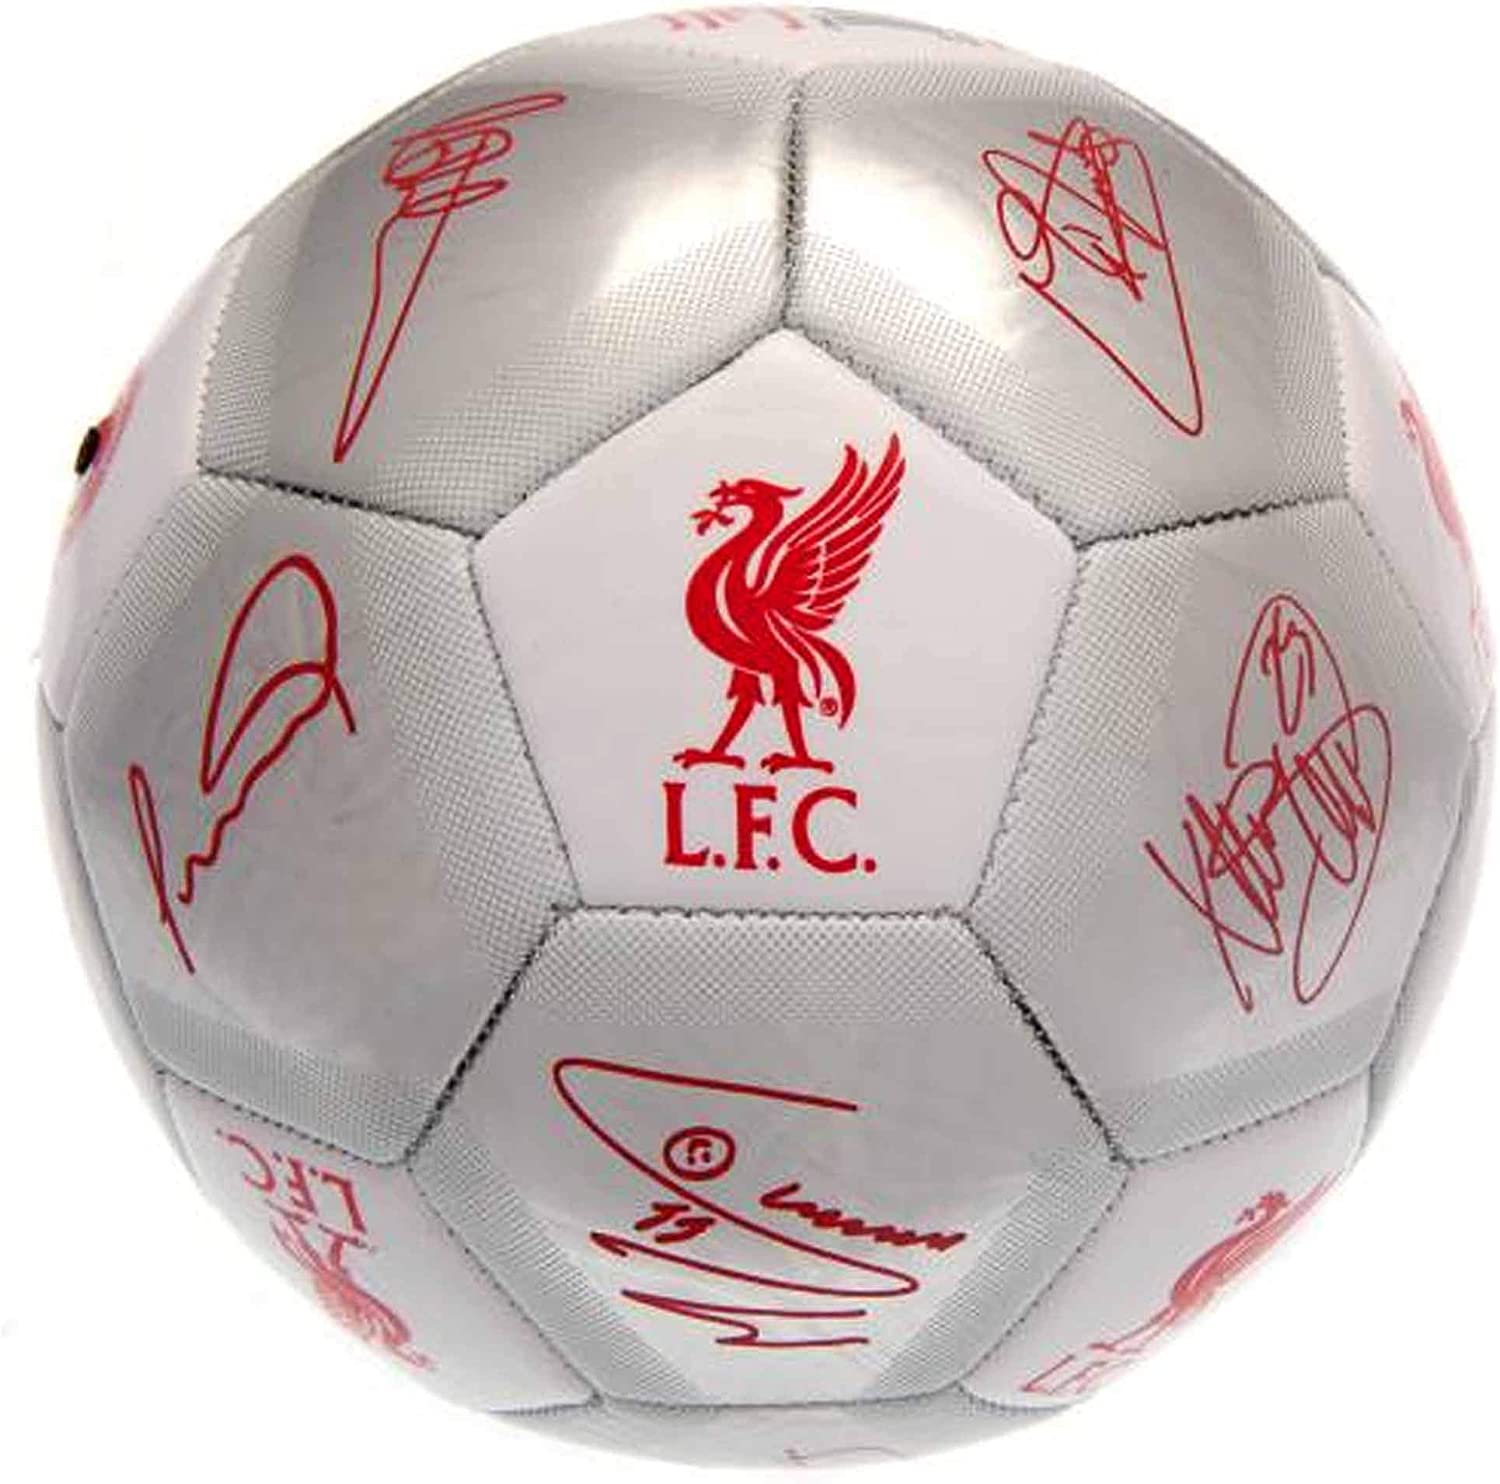 Japan Maker New L.F.C Selling Official Champions Liverpool Signat Football Players Crest